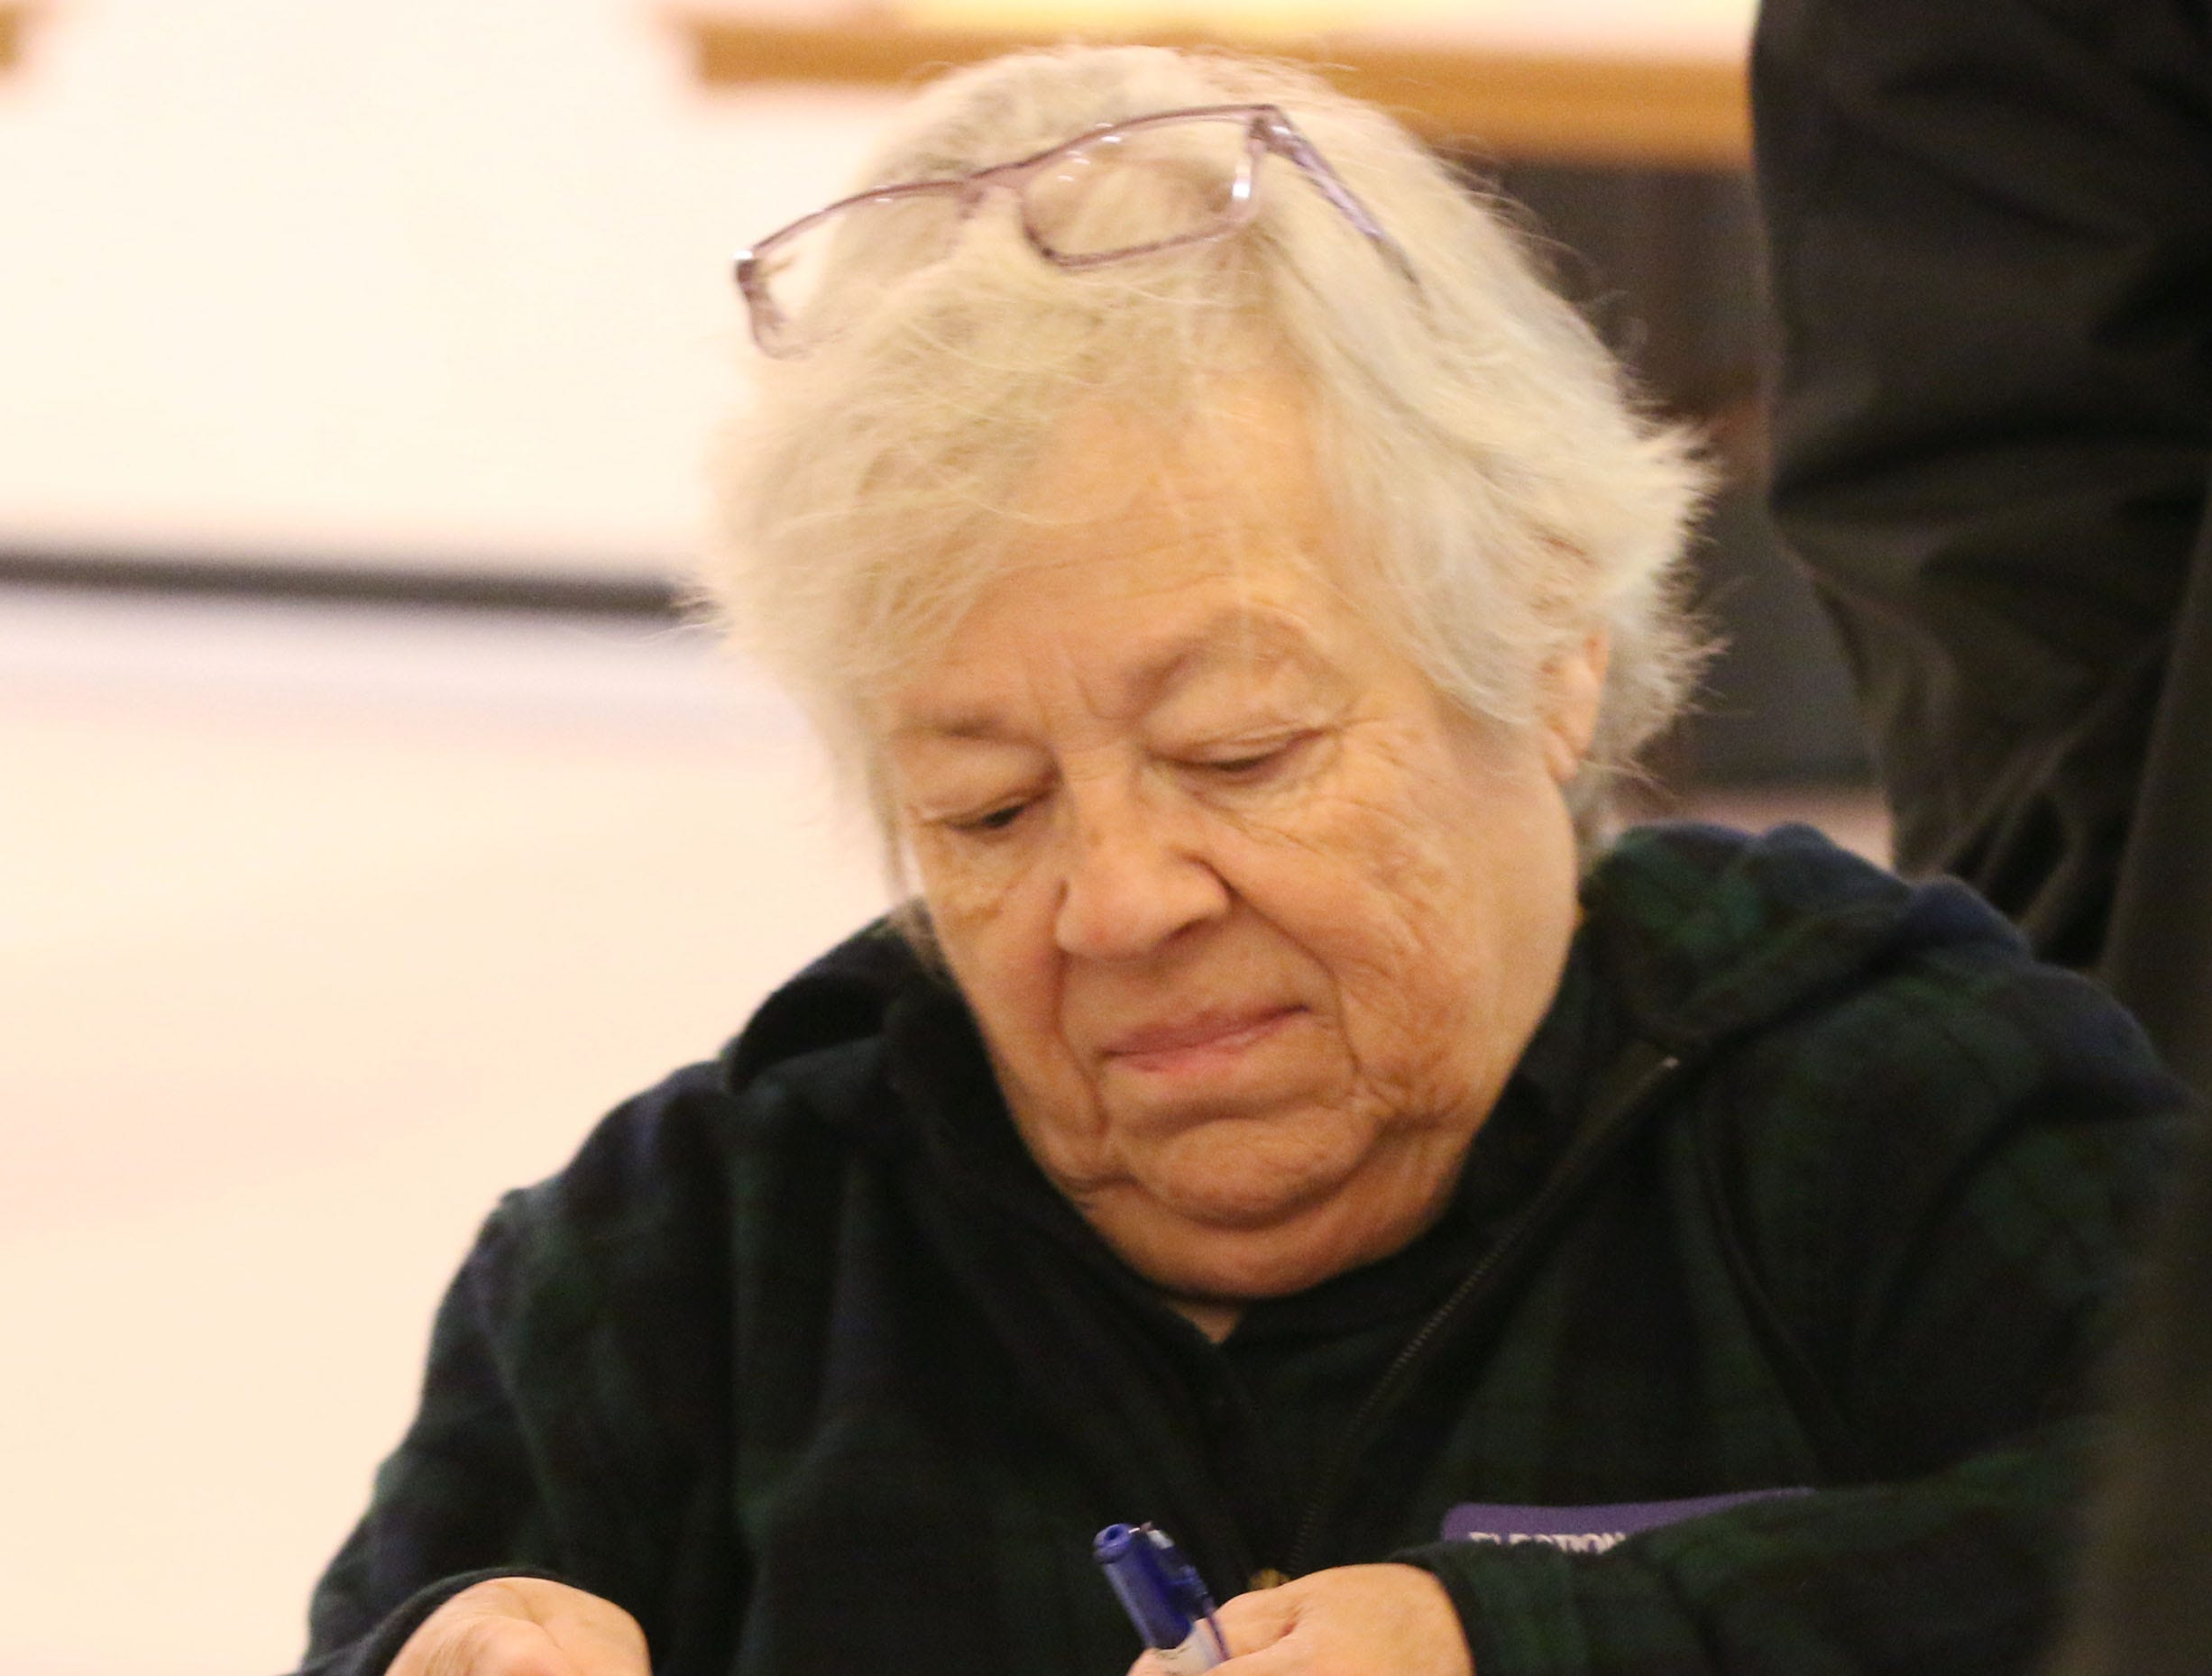 Poll worker Mary Jo Beniger thumbs through a voter list at the First United Lutheran Church poll, Tuesday, November 6, 2018, in Sheboygan, Wis.